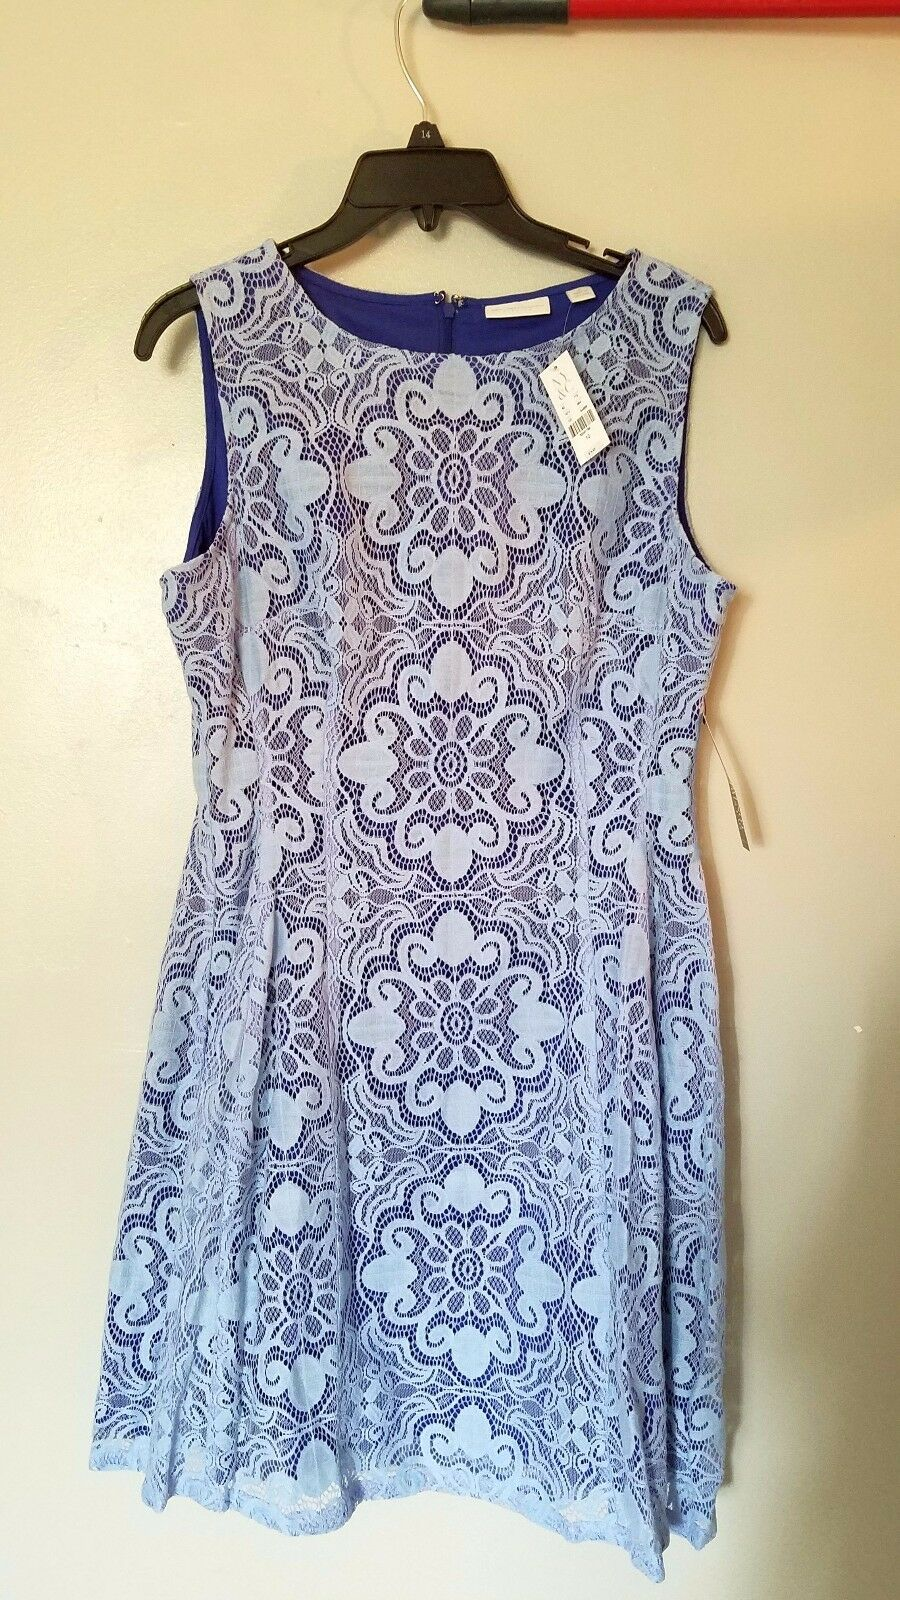 NWT NY&Co women's women's women's light bluee lace overlay over navy dress, size 10, new with tag 78a73c